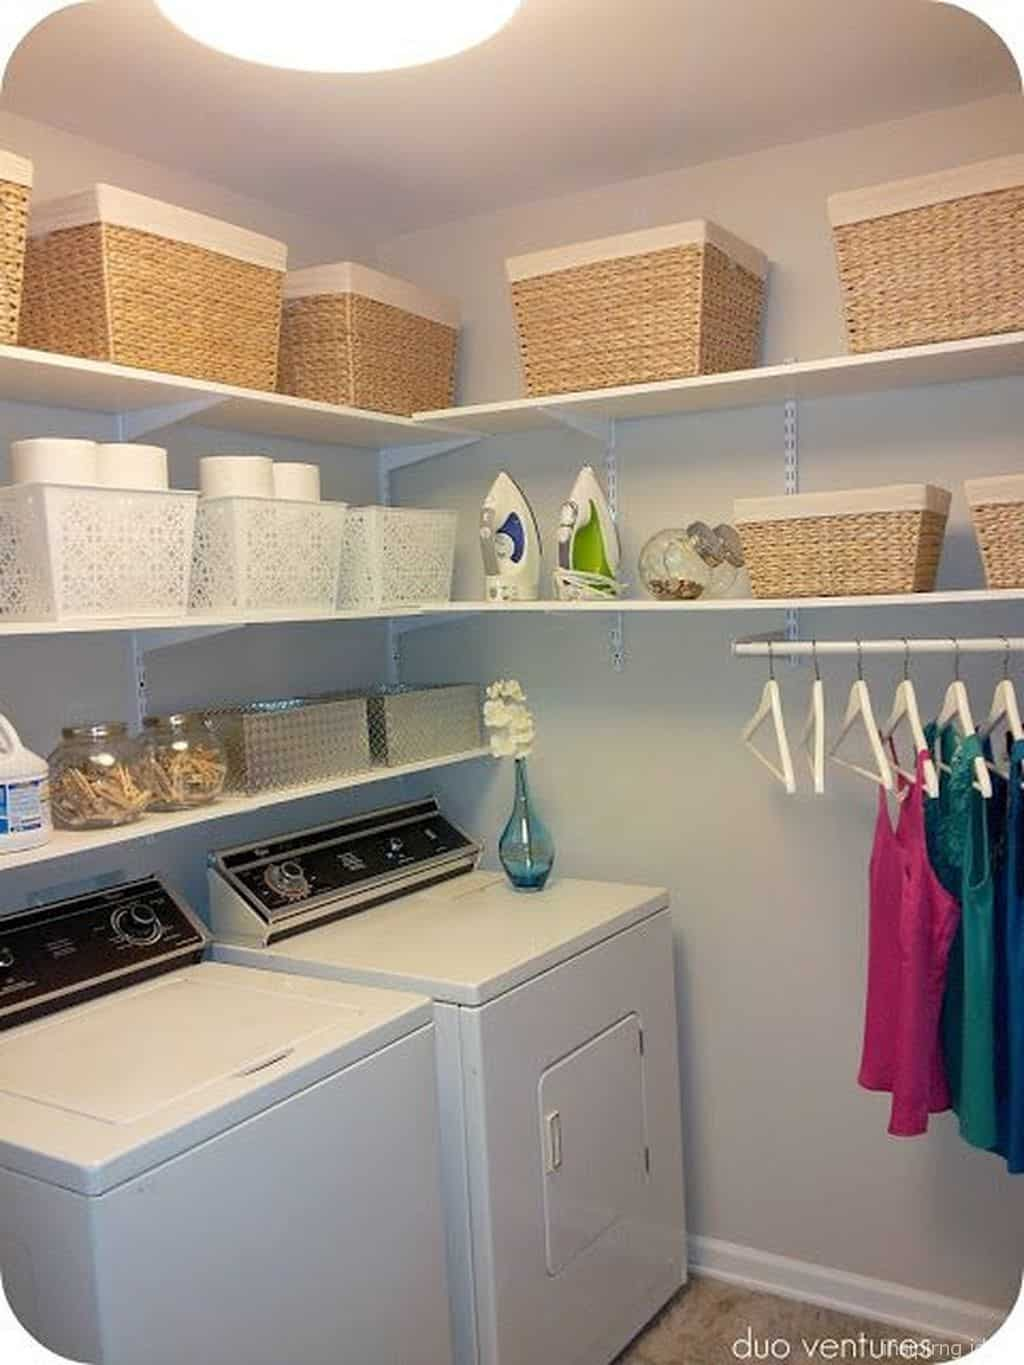 20 Laundry Room Organization Ideas That Can Function ... on Laundry Room Organization Ideas  id=55513